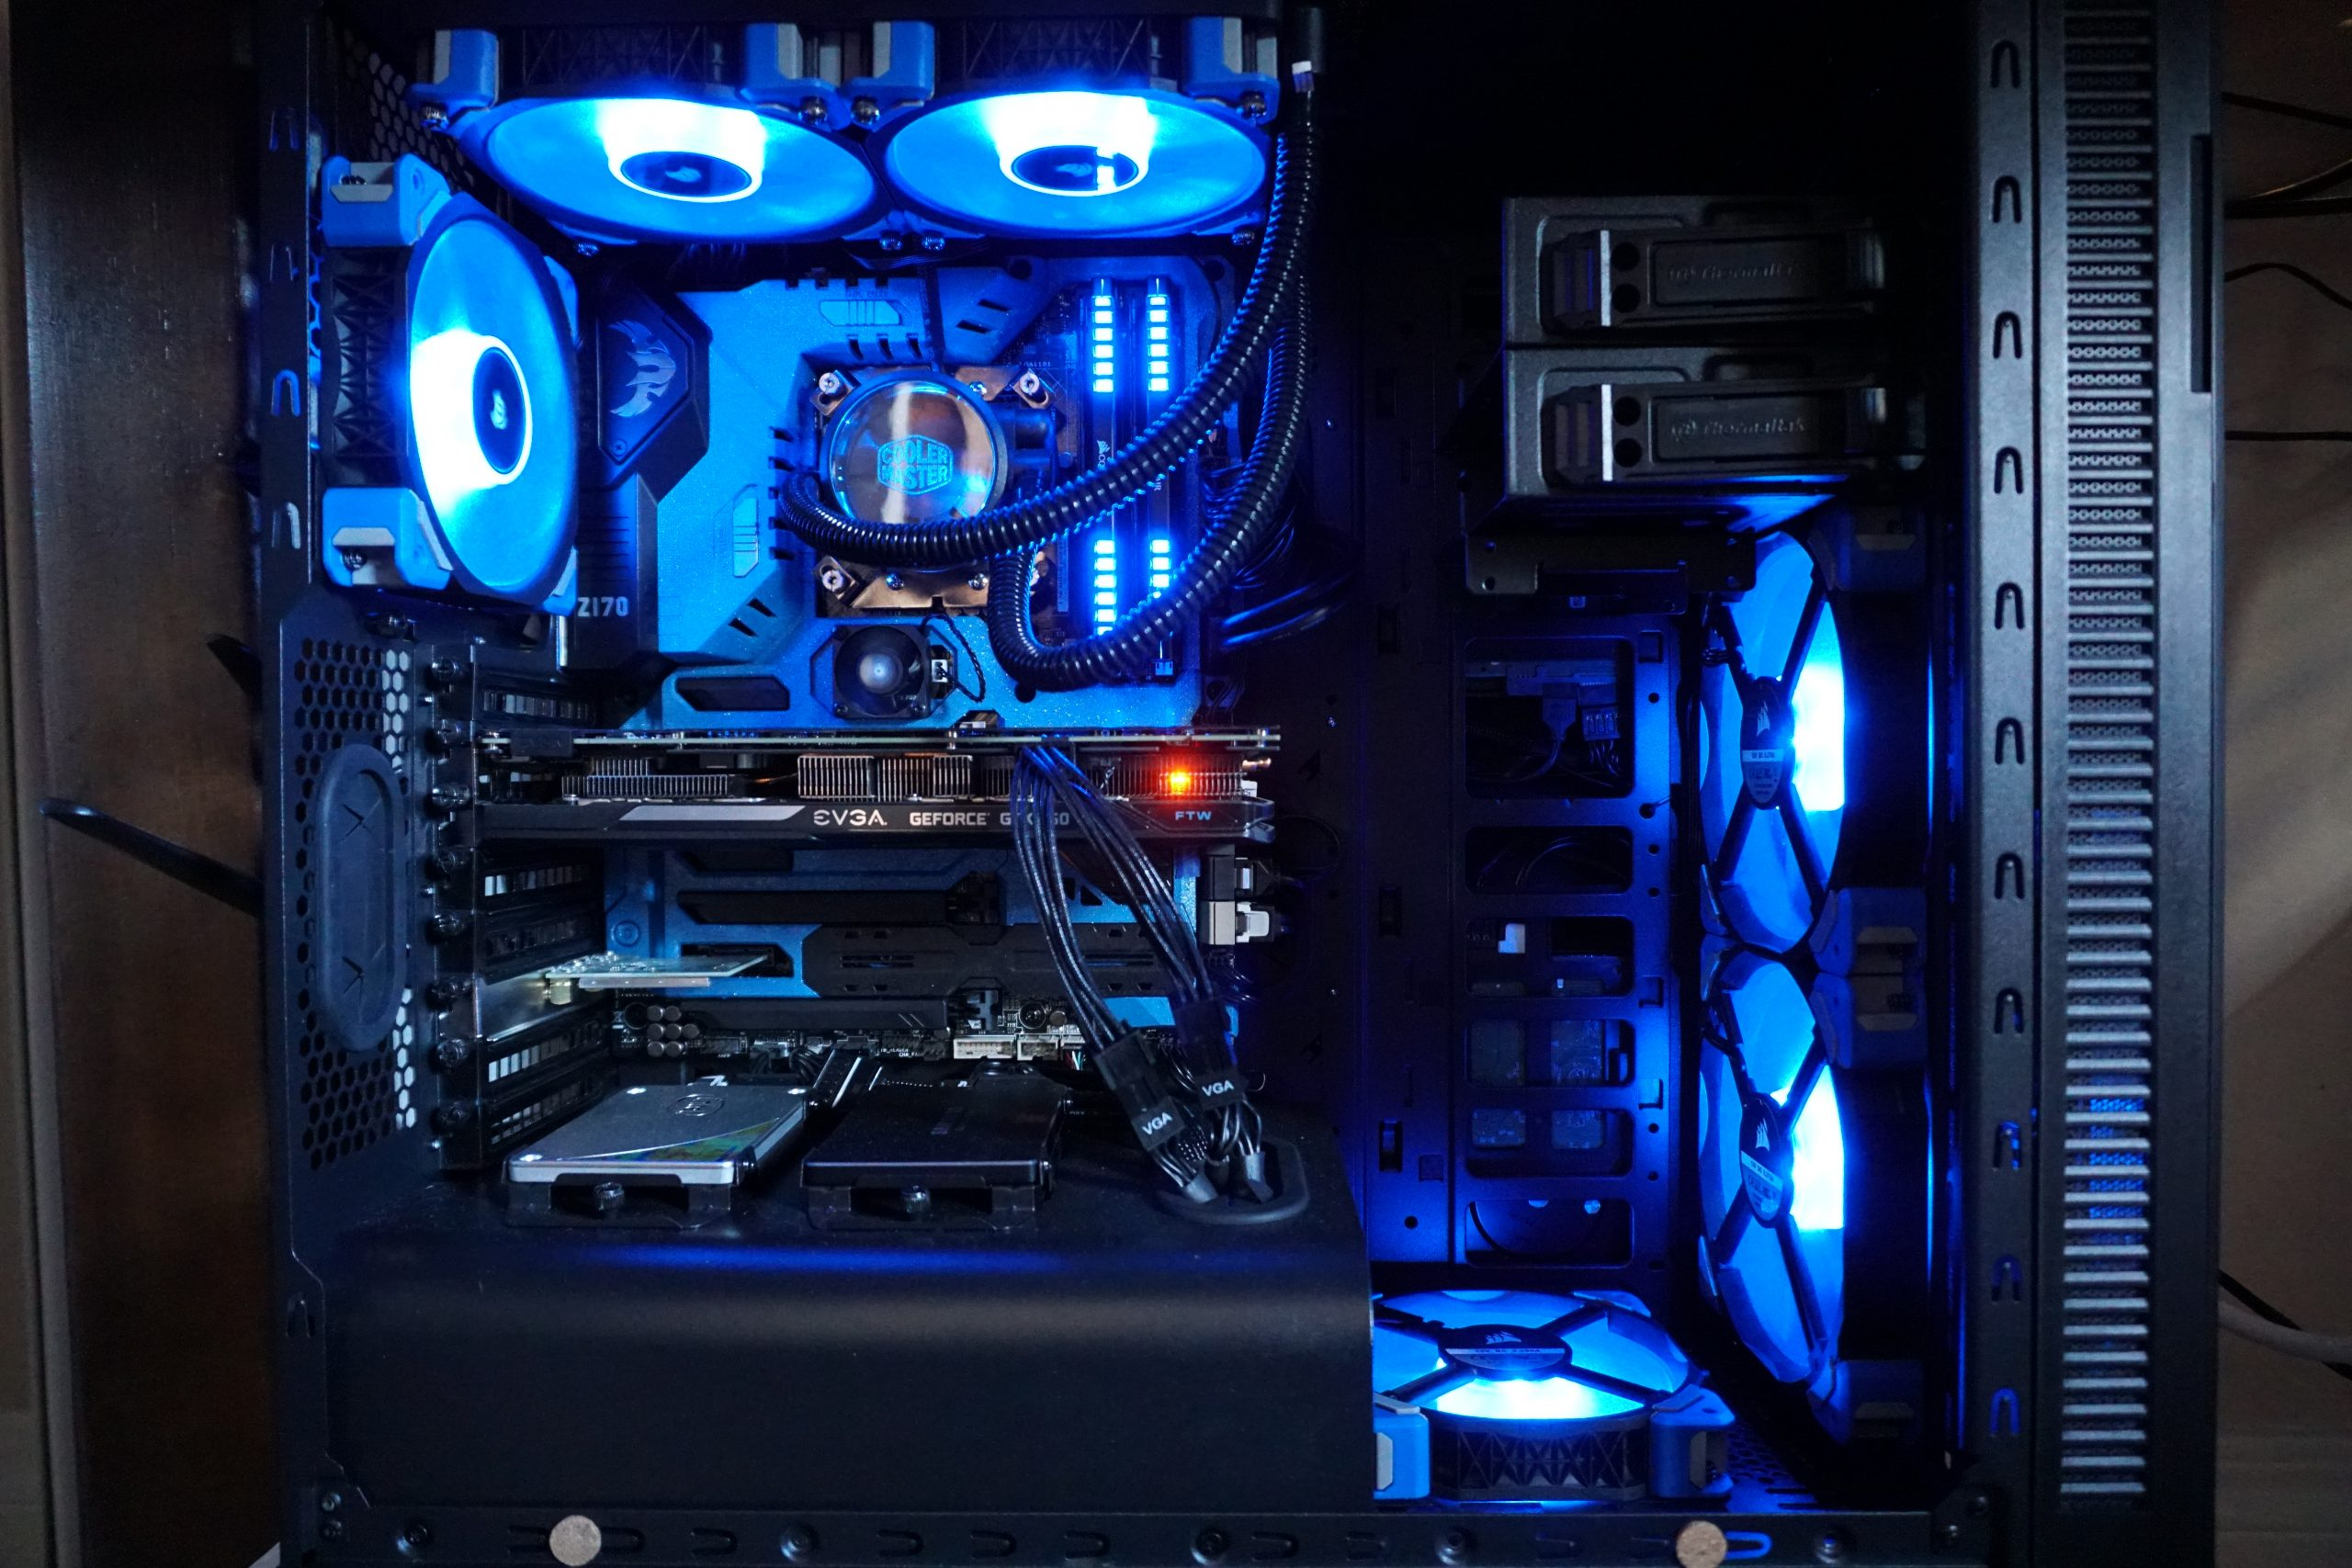 4 Fans Pull 1 Fan Push Good Idea Or No Liquid And pertaining to measurements 6000 X 4000